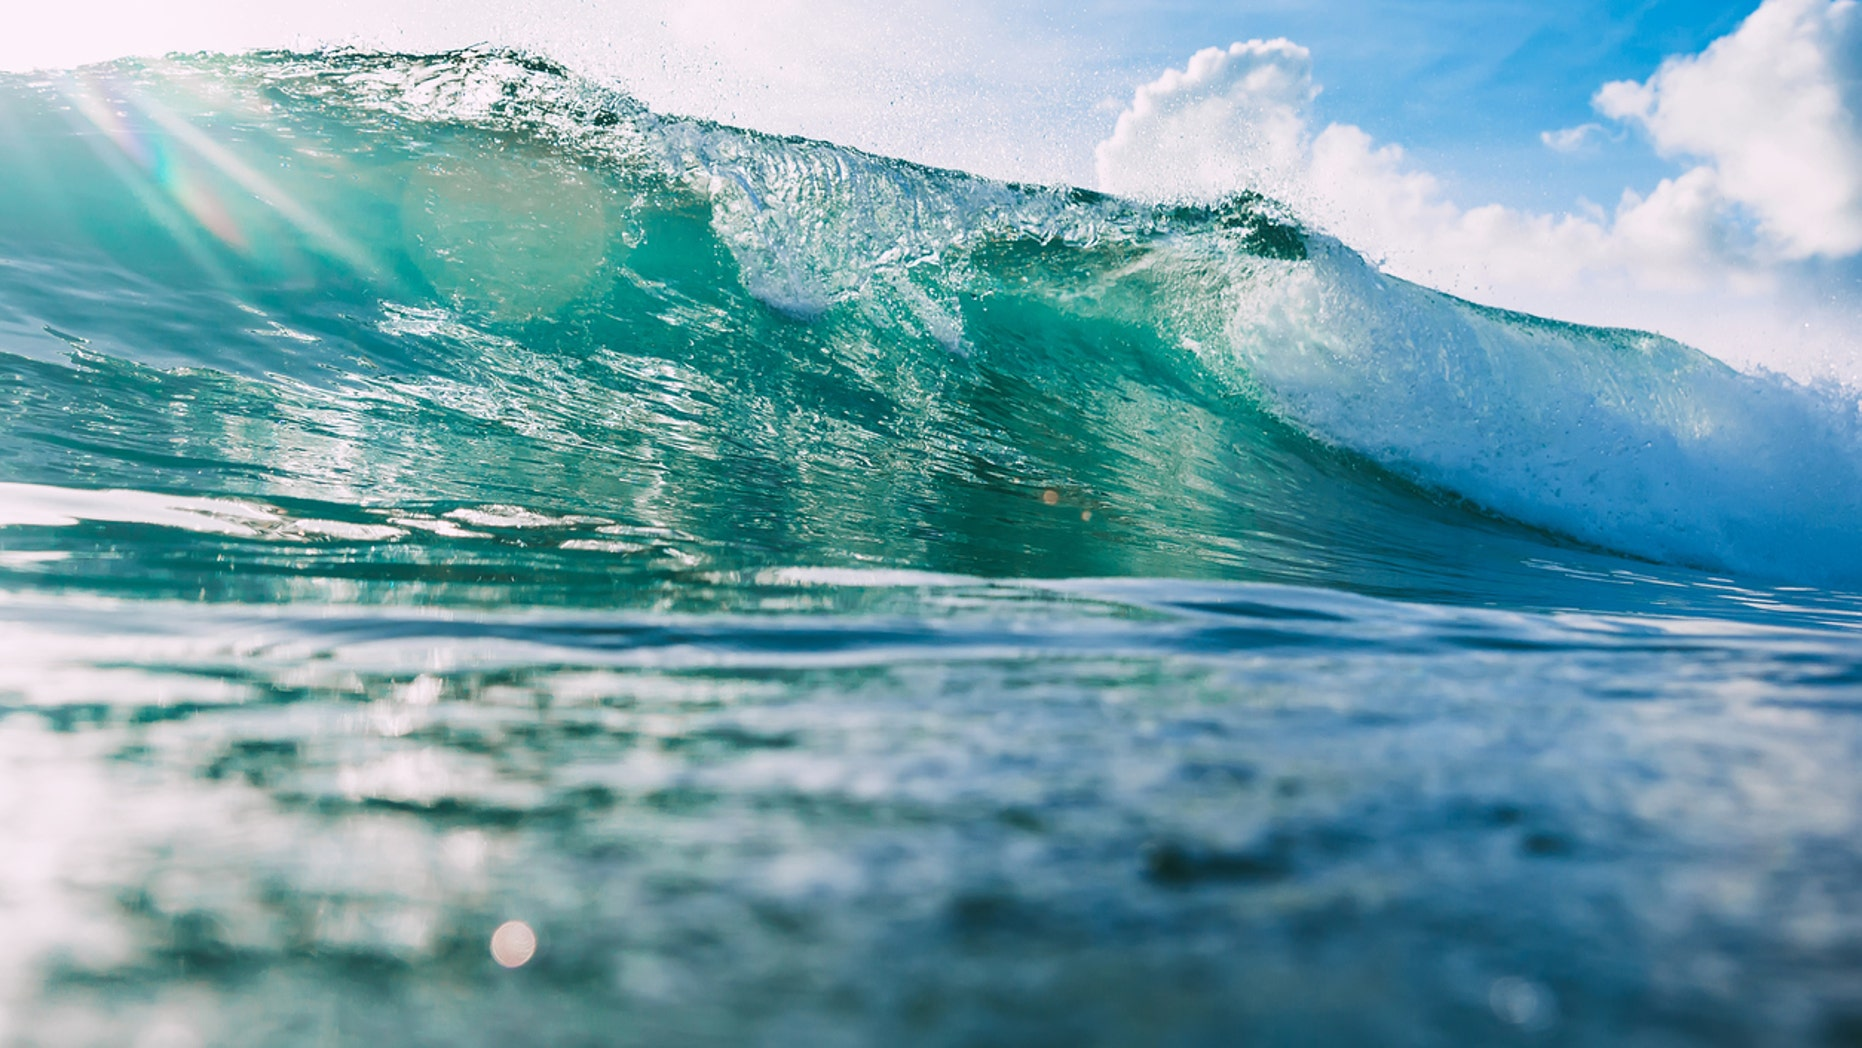 The study found that waves have increased in strength by 0.41 percent per year since 1948